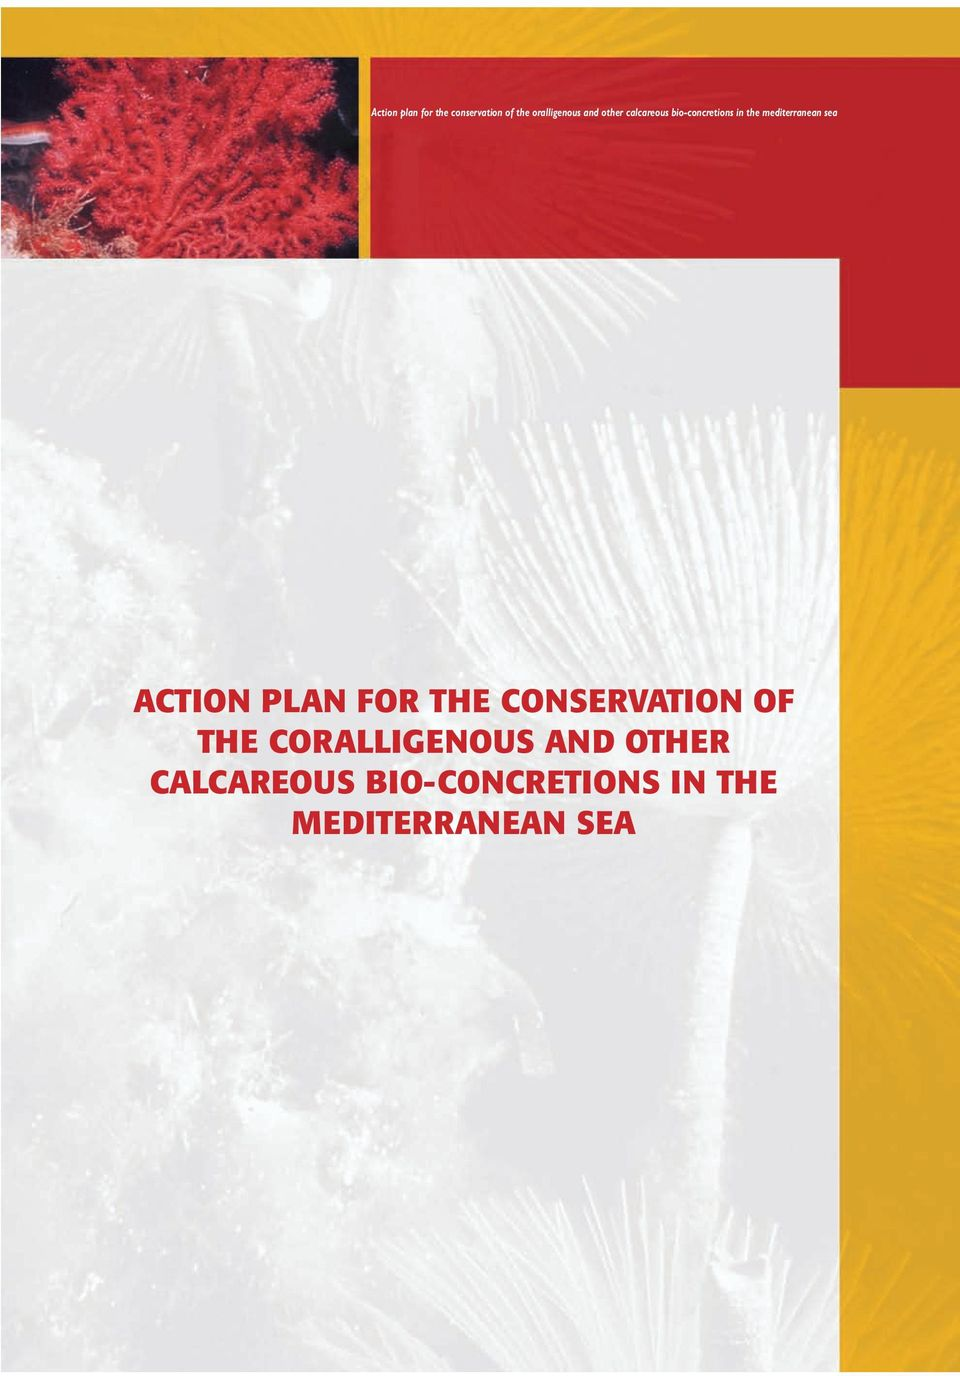 ACTION PLAN FOR THE CONSERVATION OF THE CORALLIGENOUS AND